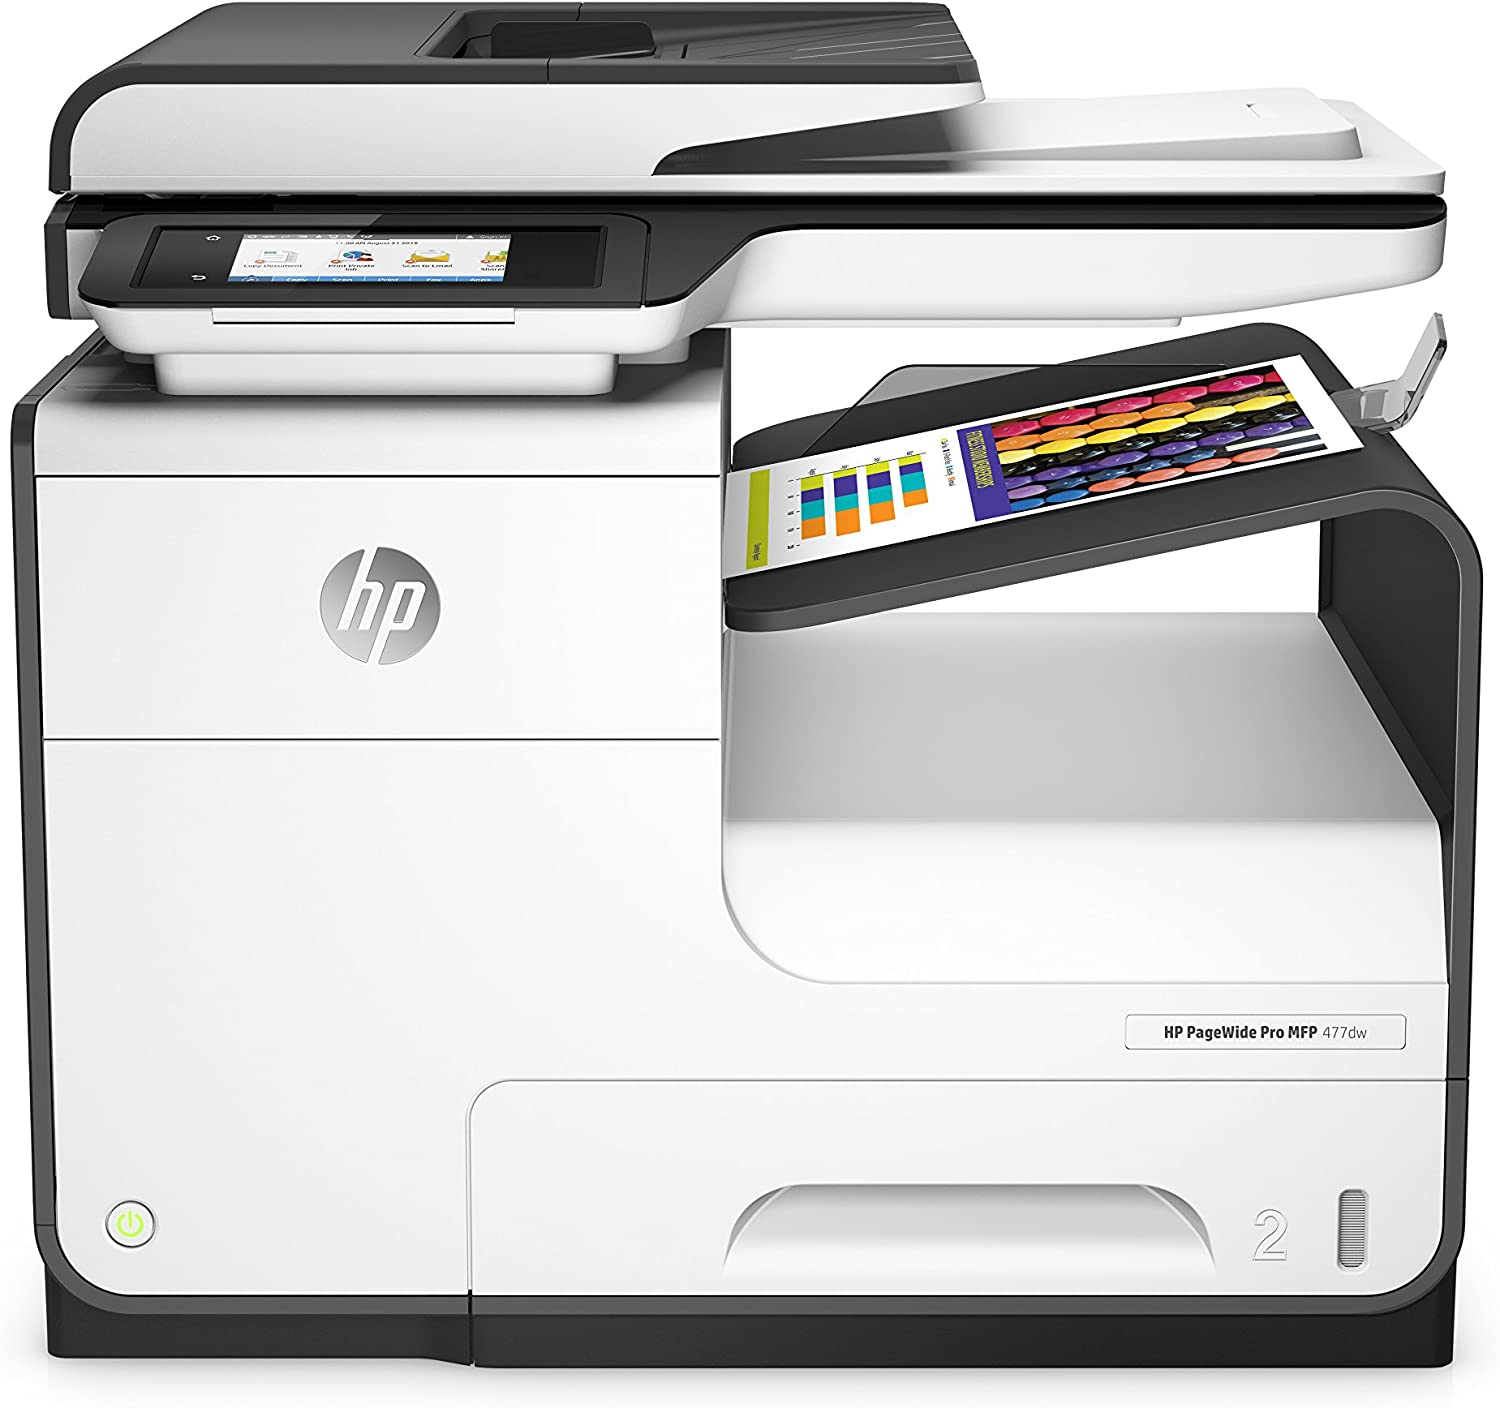 HP PageWide Pro